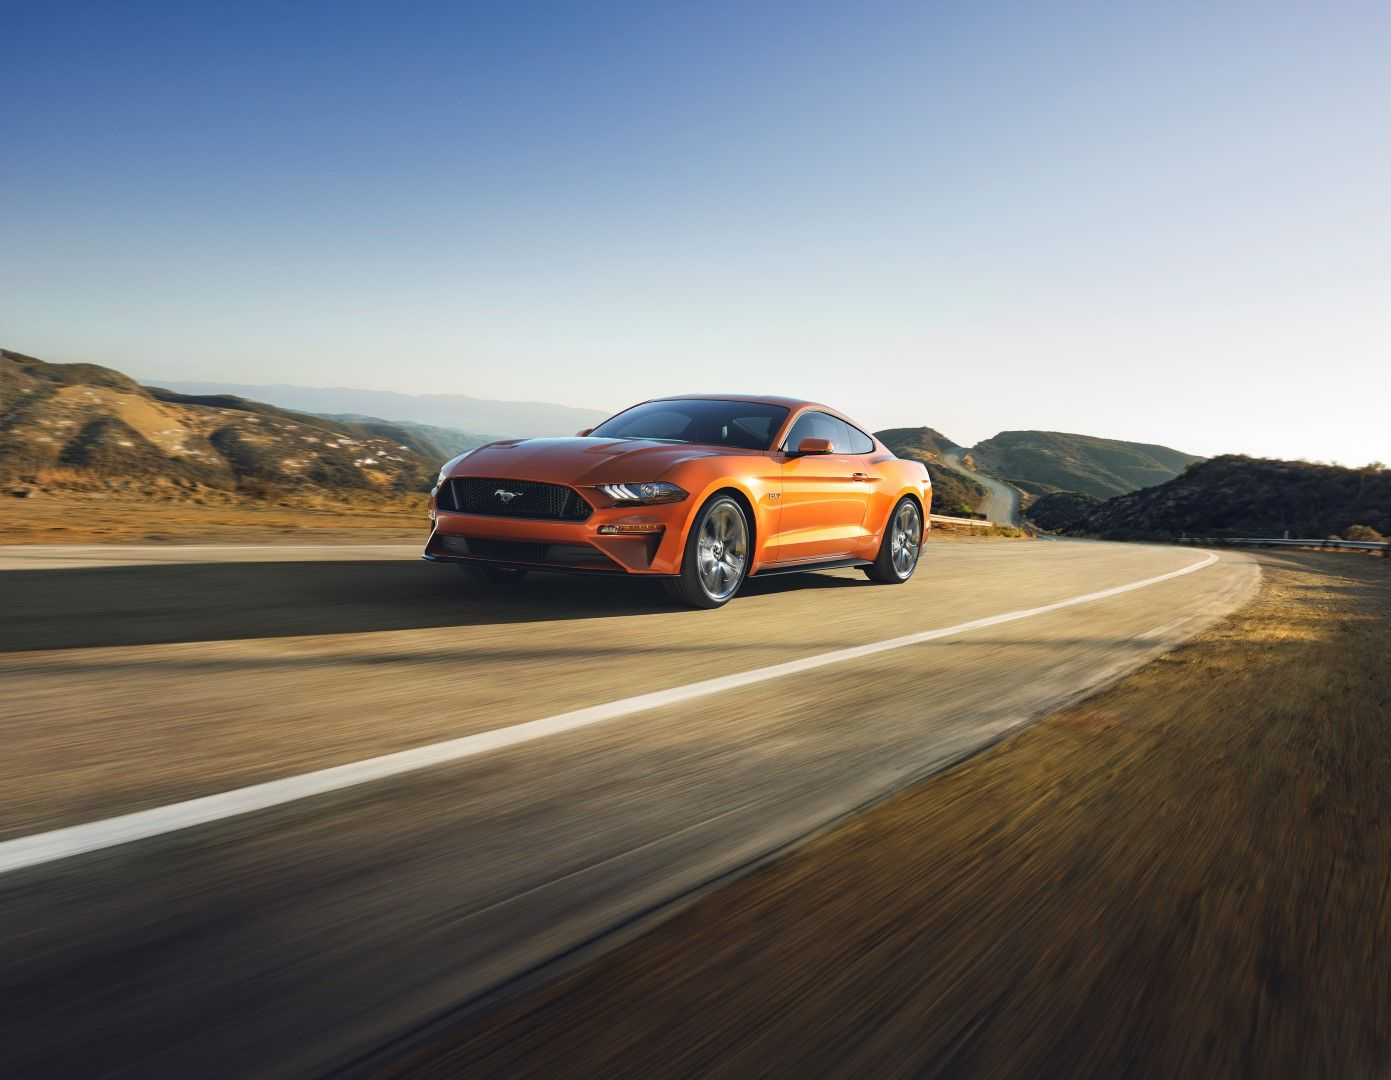 2018 Ford Mustang (With images) Mustang, Ford mustang